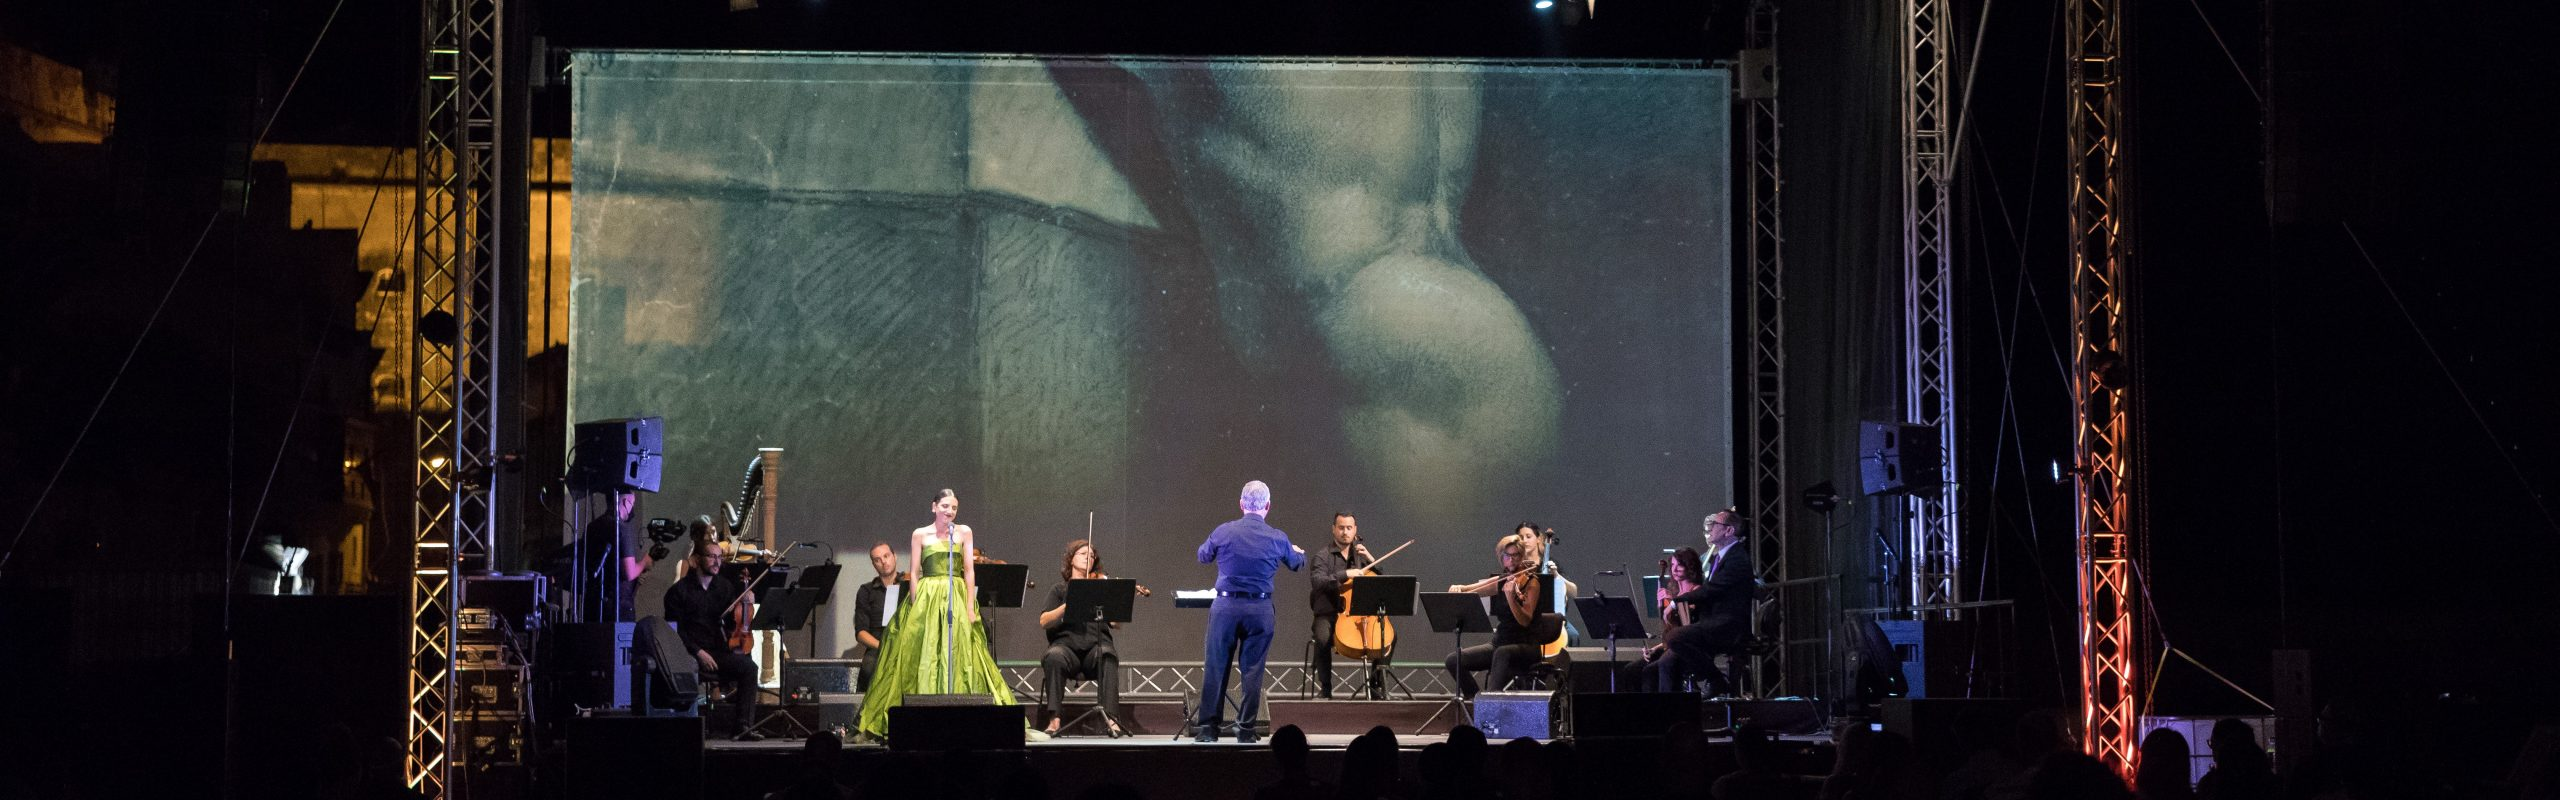 Michael Laus directing a classical music concert in Malta